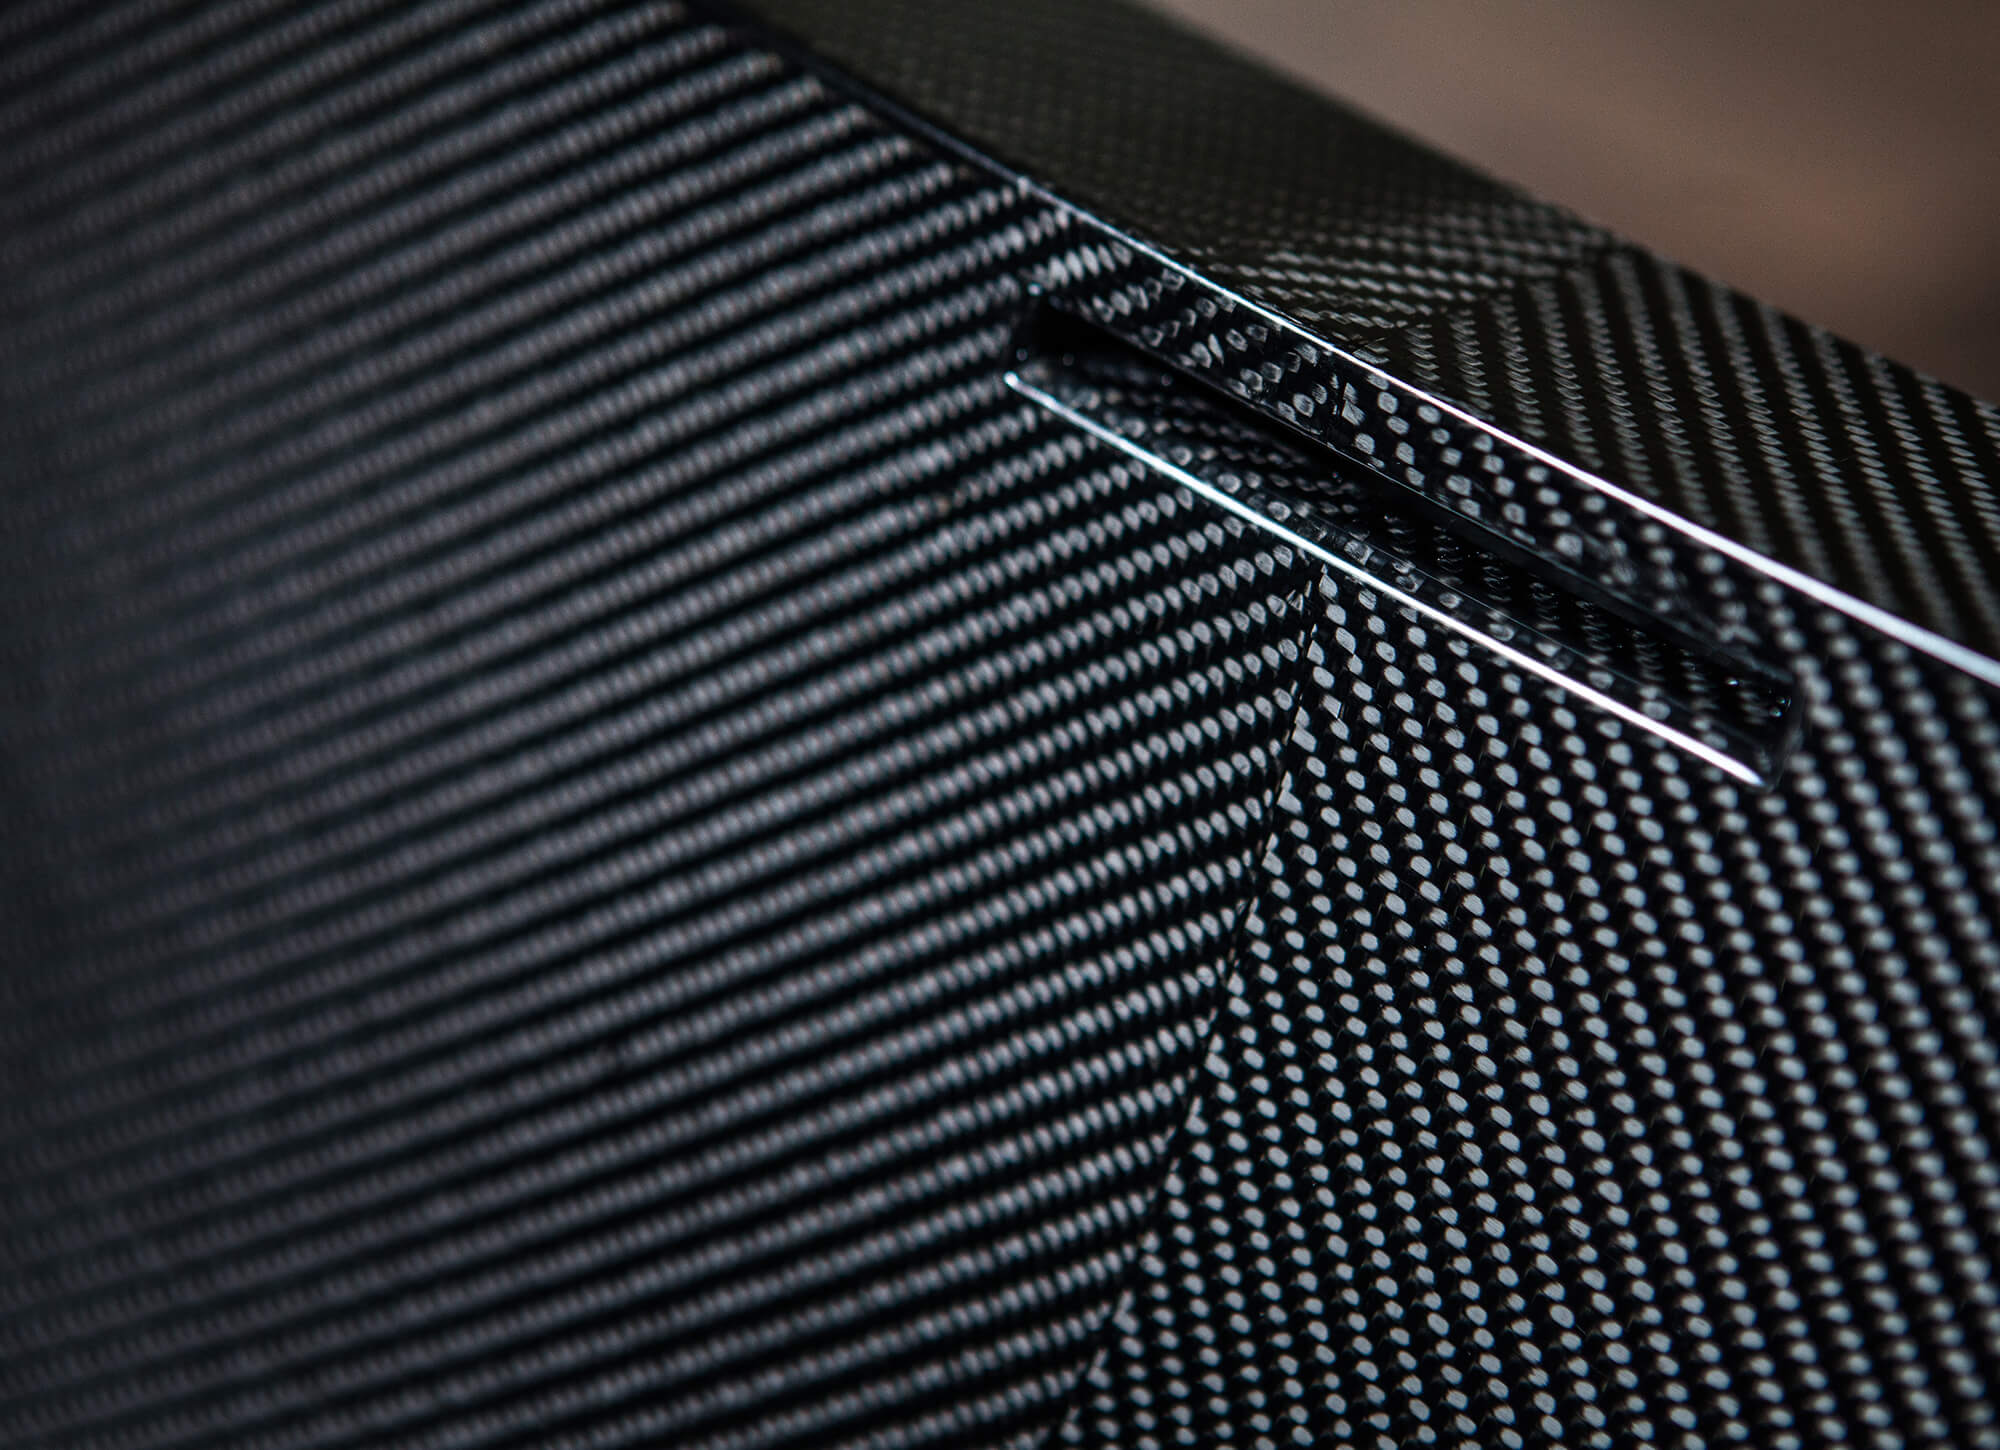 Close up detail of black carbon fibre bath tub.